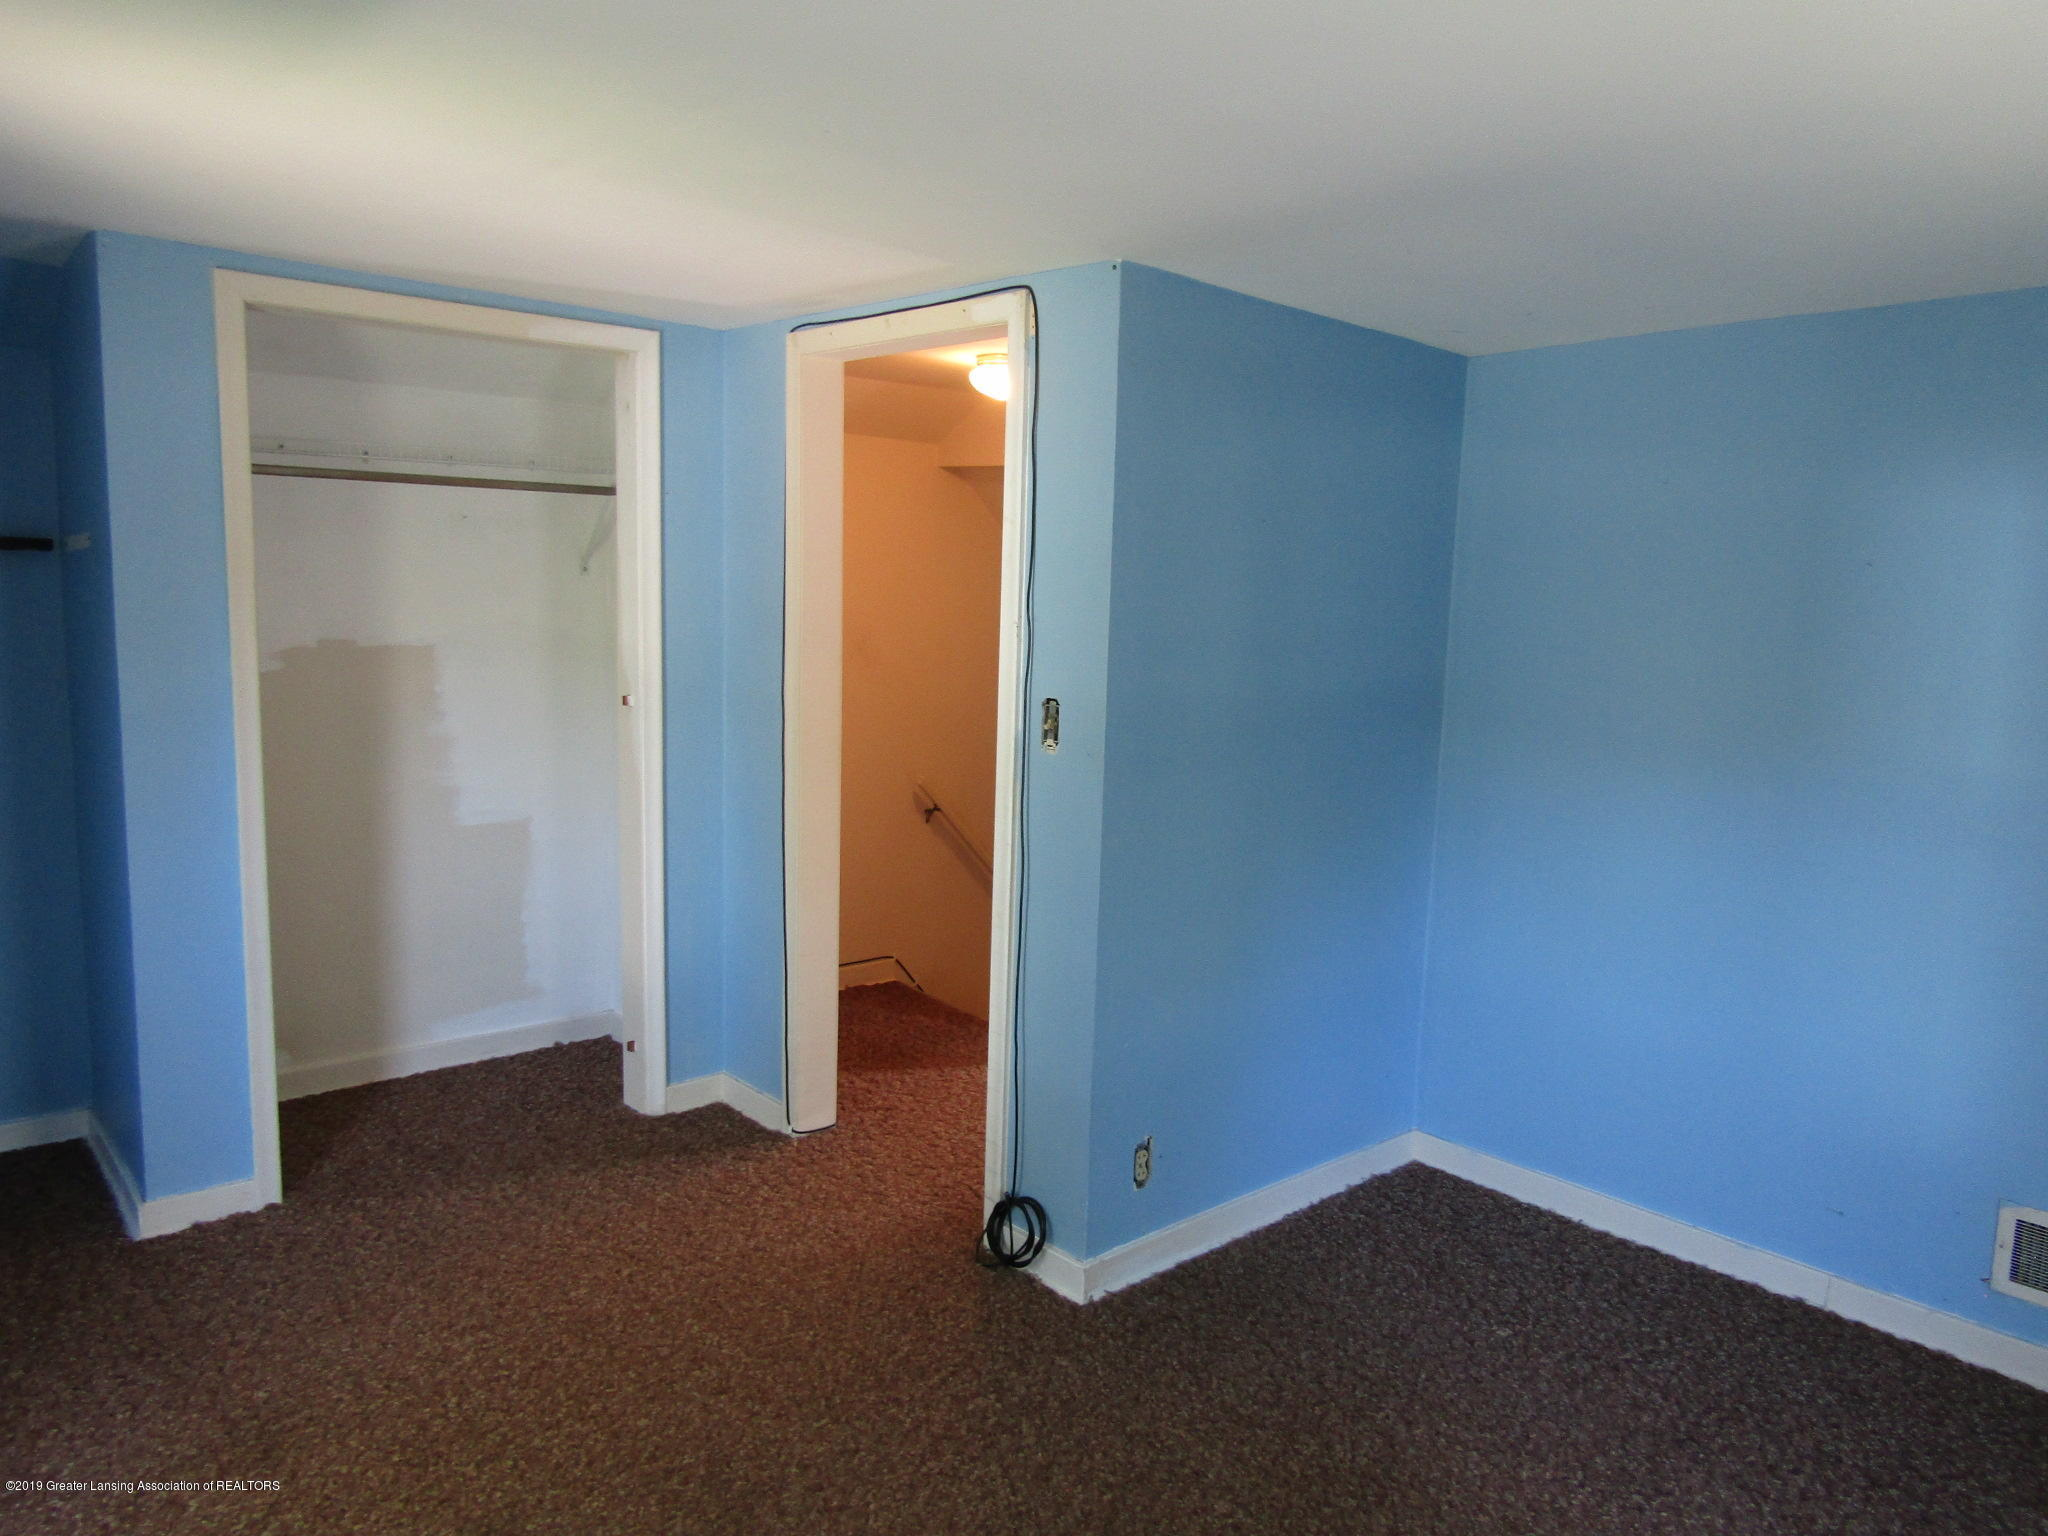 721 Pleasant St - Bedroom - 53